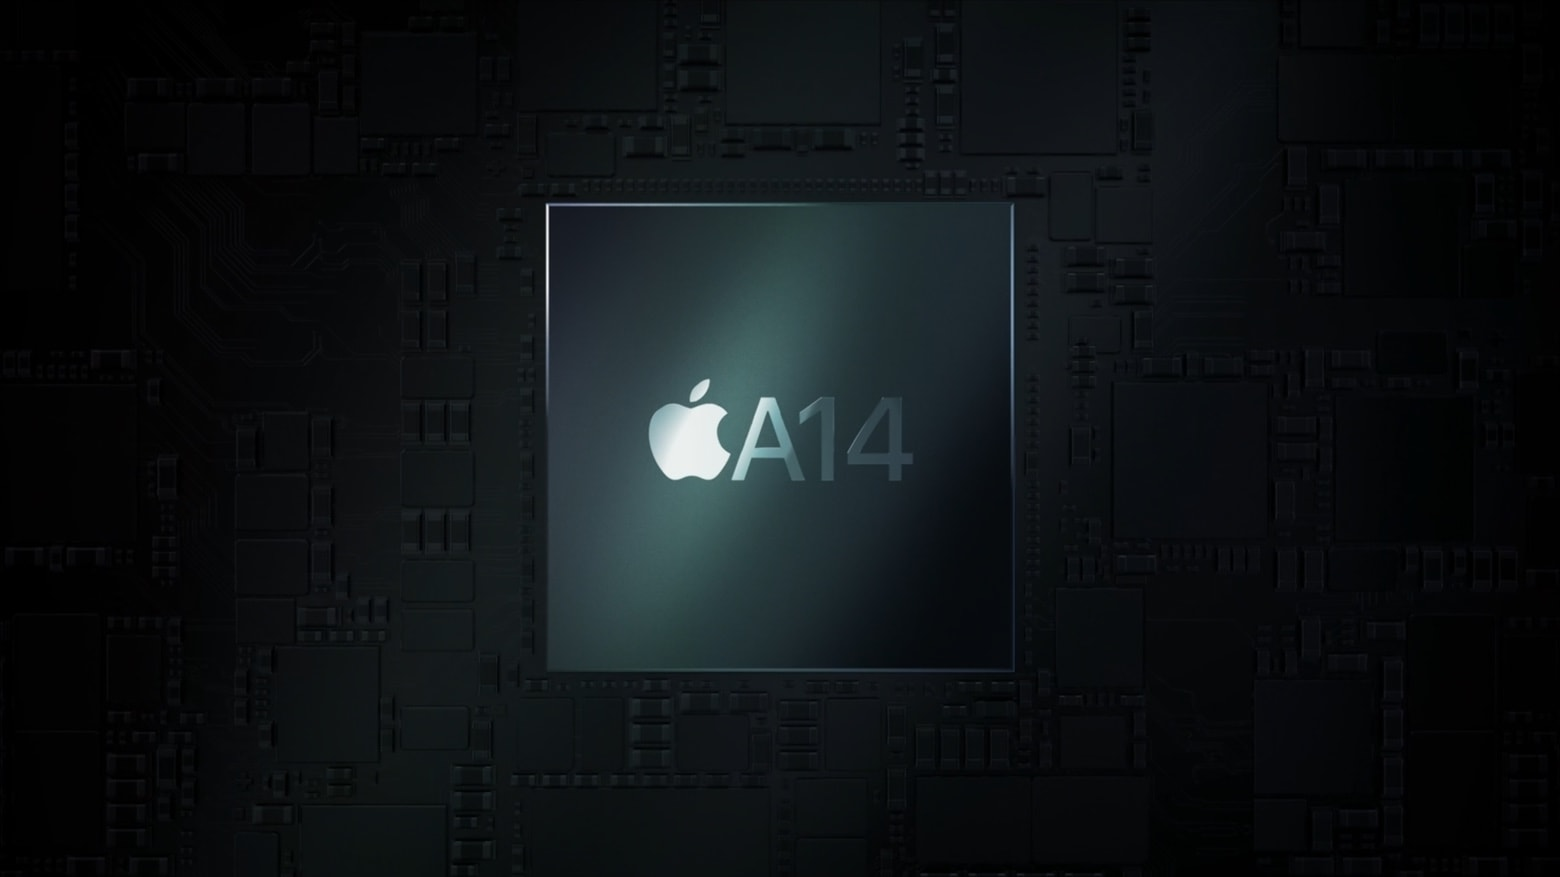 Image of article 'Apple flexes its processor prowess with new A14 Bionic'